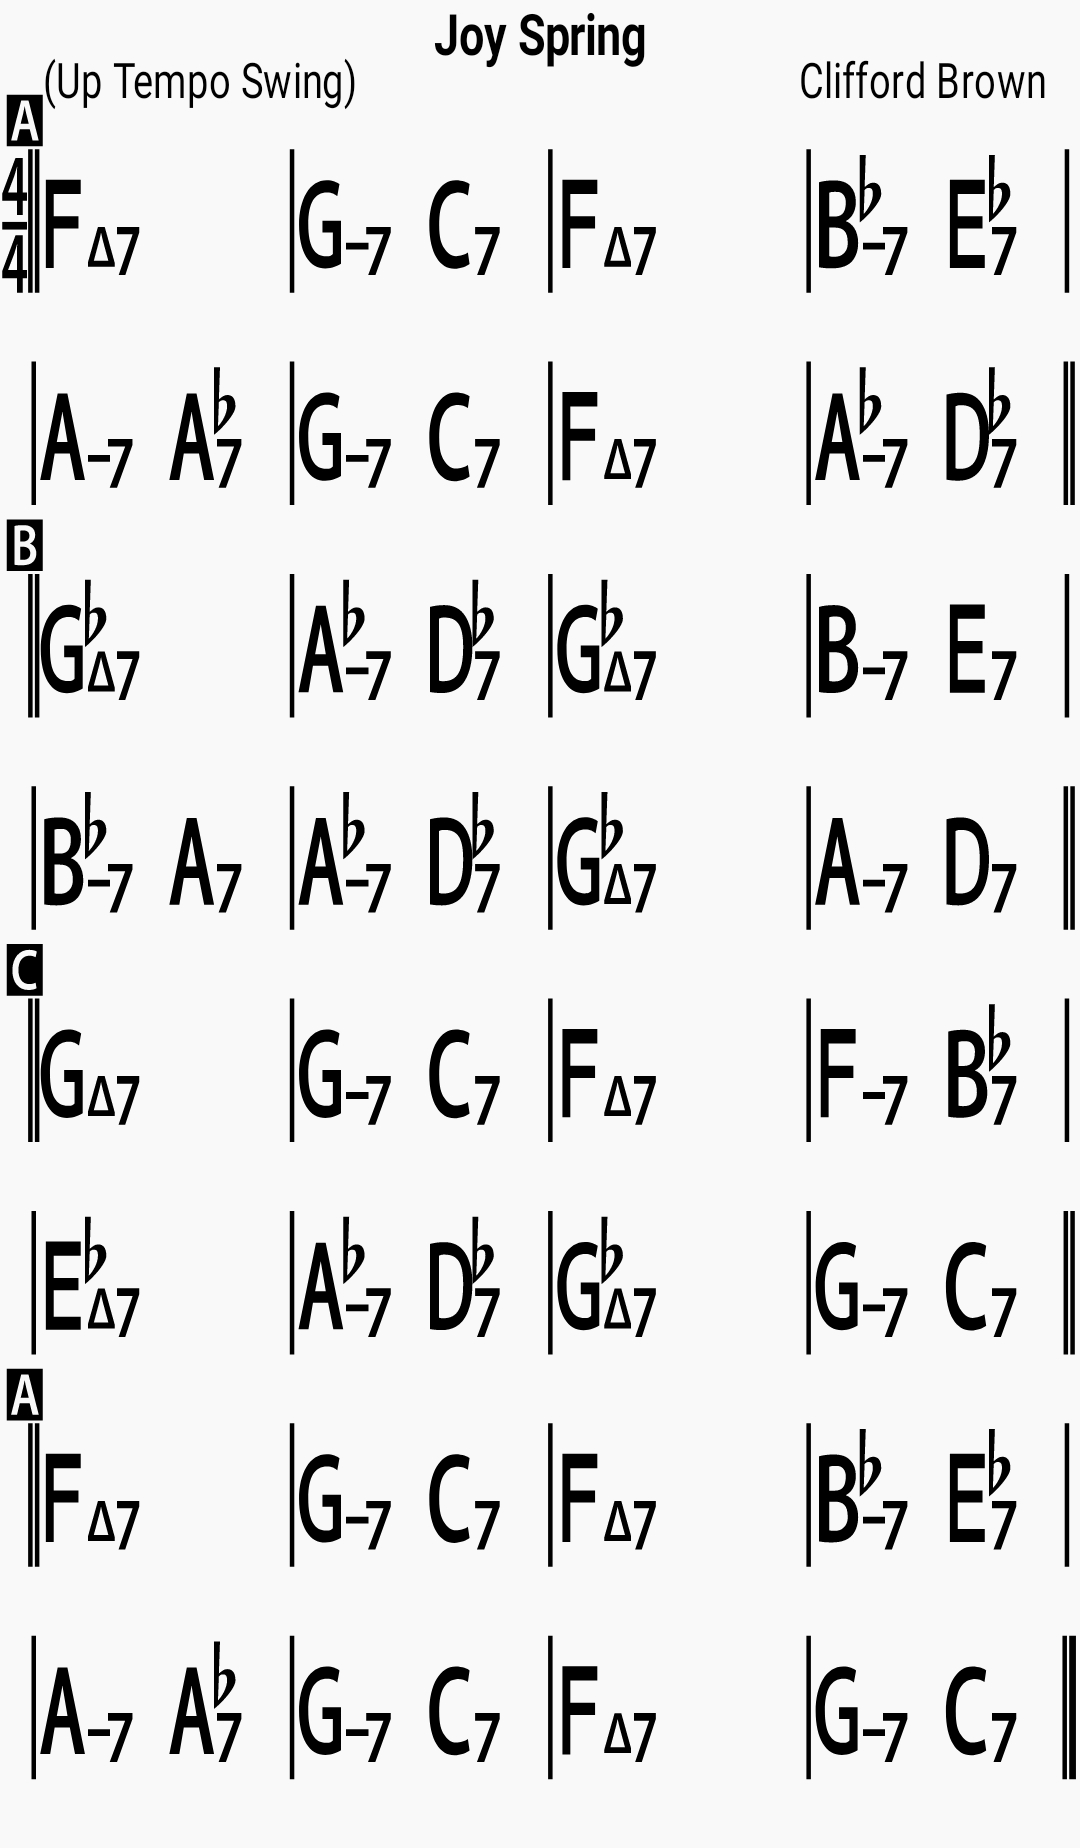 Chord chart for the jazz standard Joy Spring